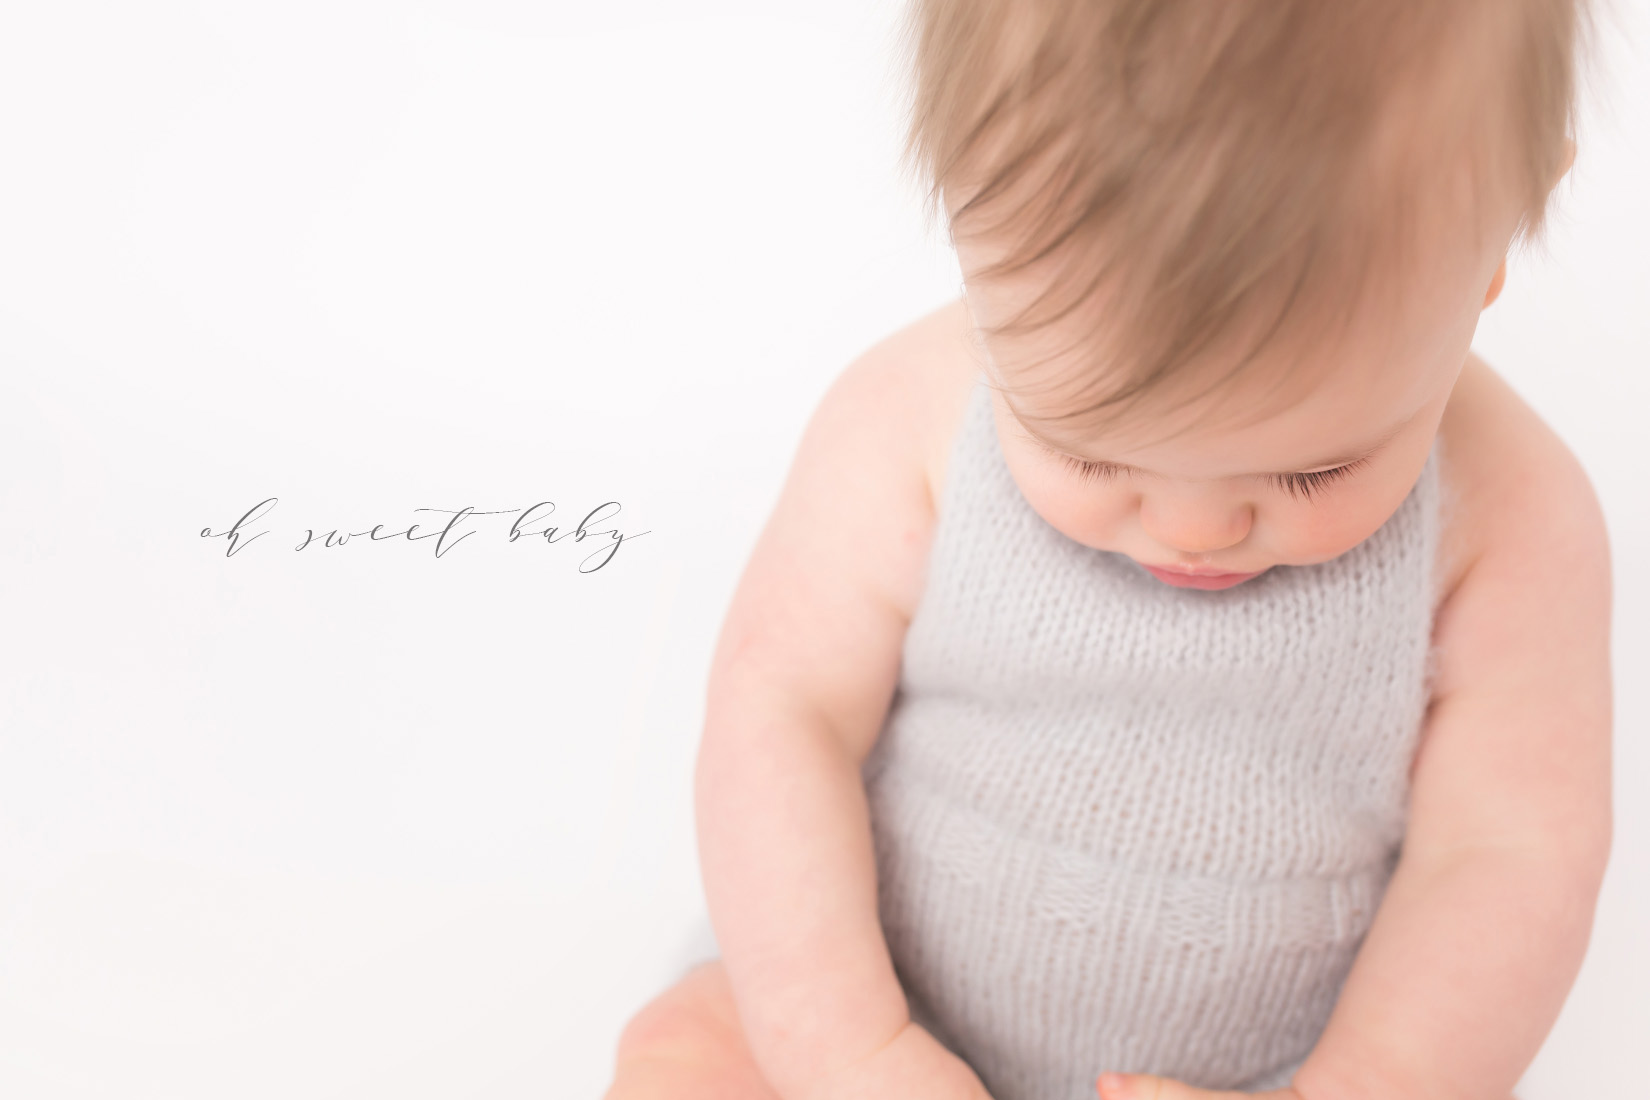 6 month old little baby boy sitting on white background in a pale blue knitted romper. He has light brown hair with a perfect part and endless eyelashes. He is looking down at his hands and a wooden toy.